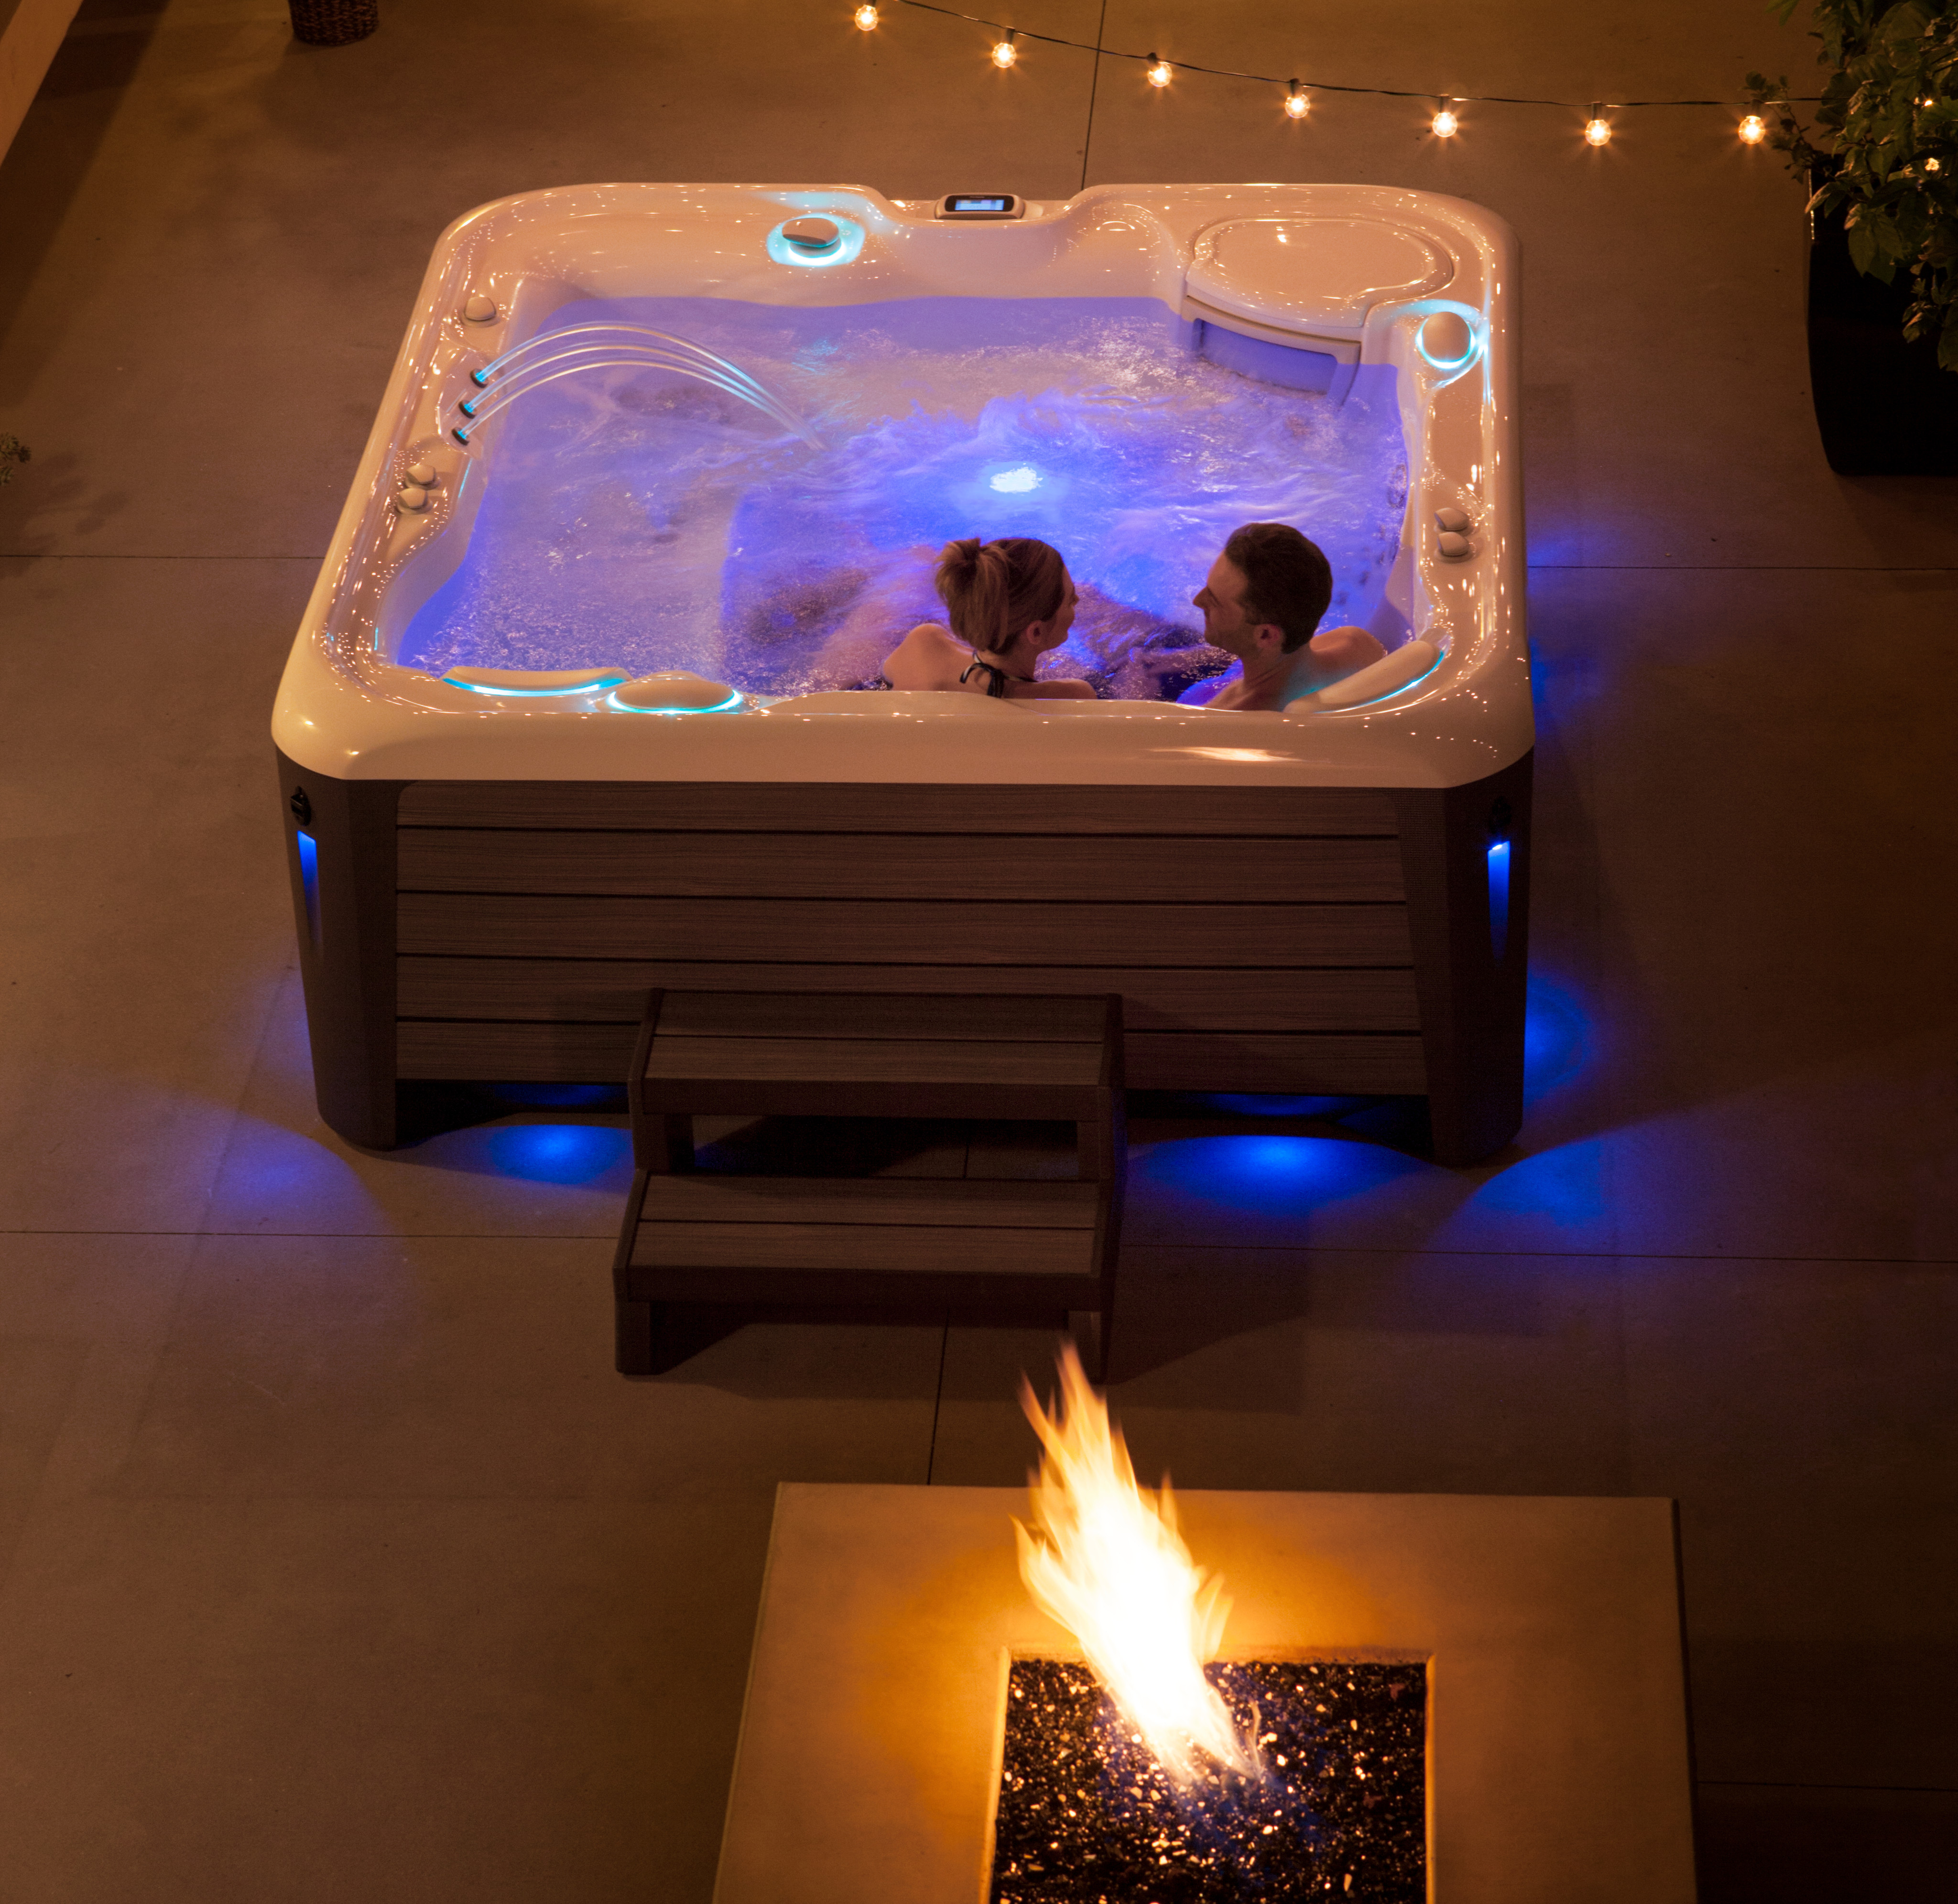 5 Things a Hot Tub Will Ruin For You